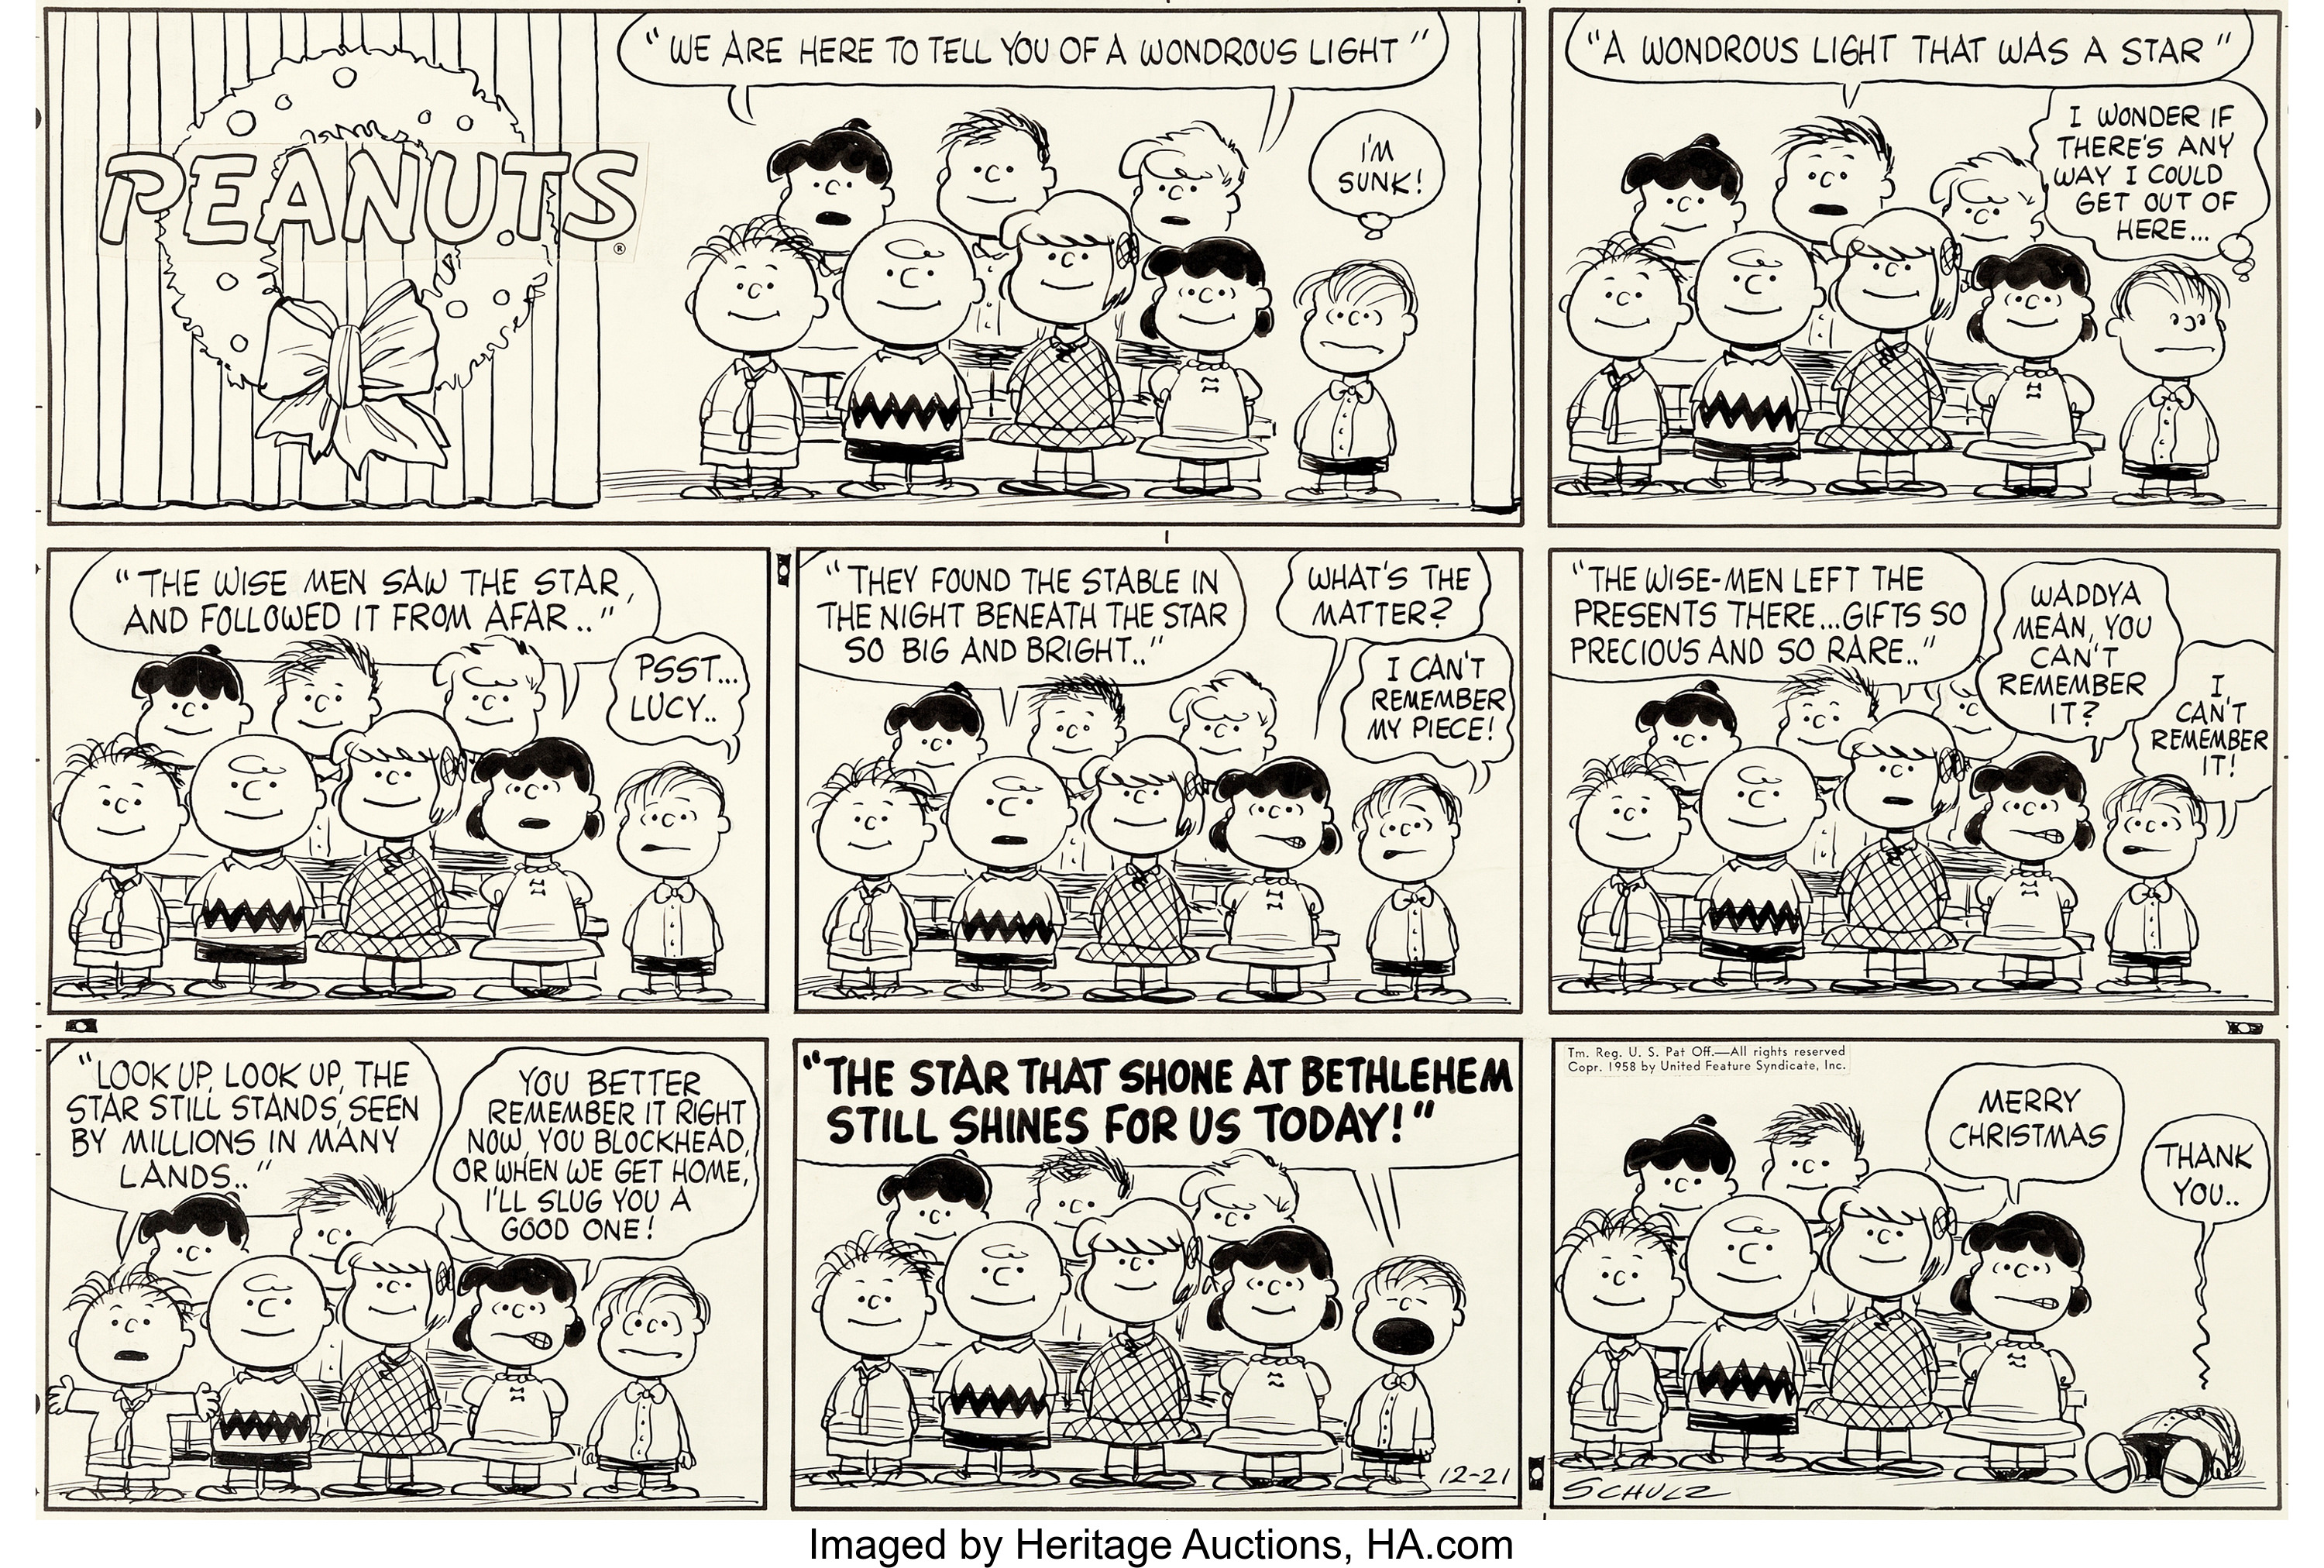 An original Sunday Peanuts comic strip, drawn by Charles Schulz and dated 12-21-58.